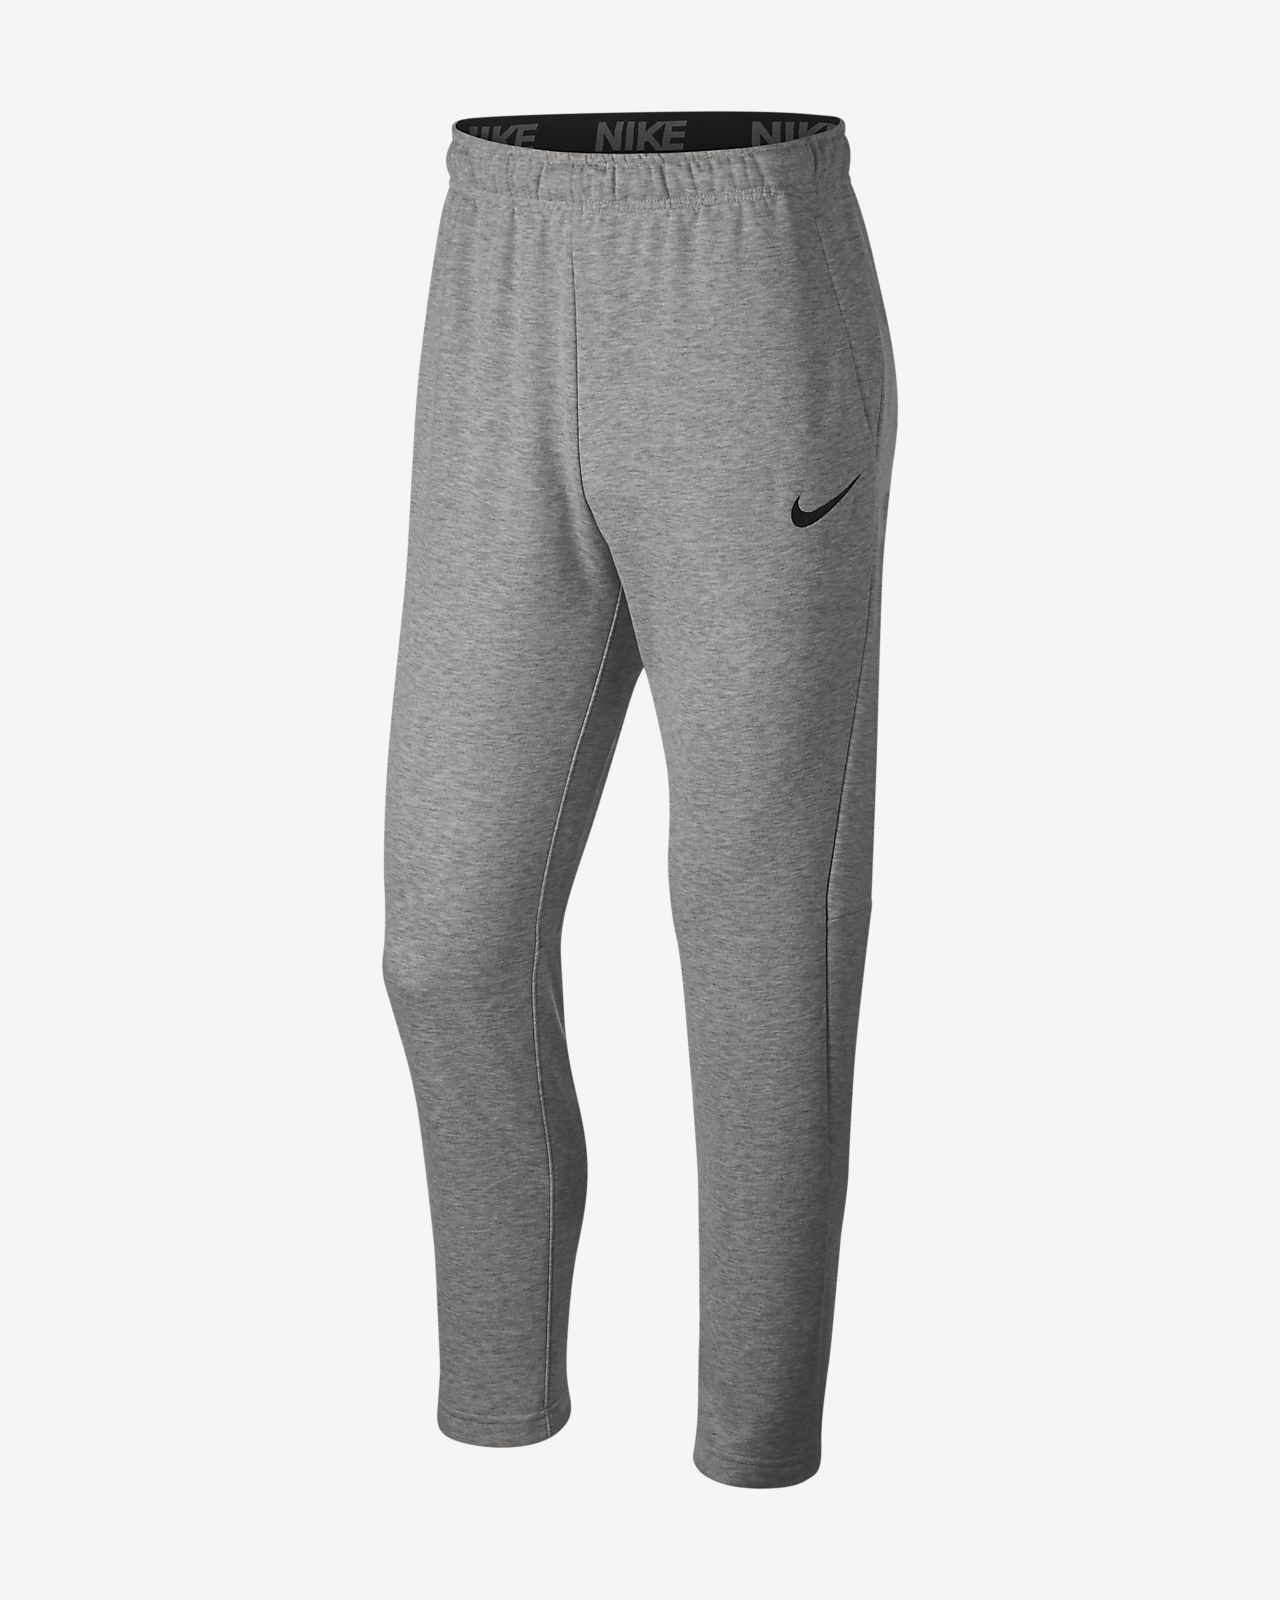 nike pants xl mens